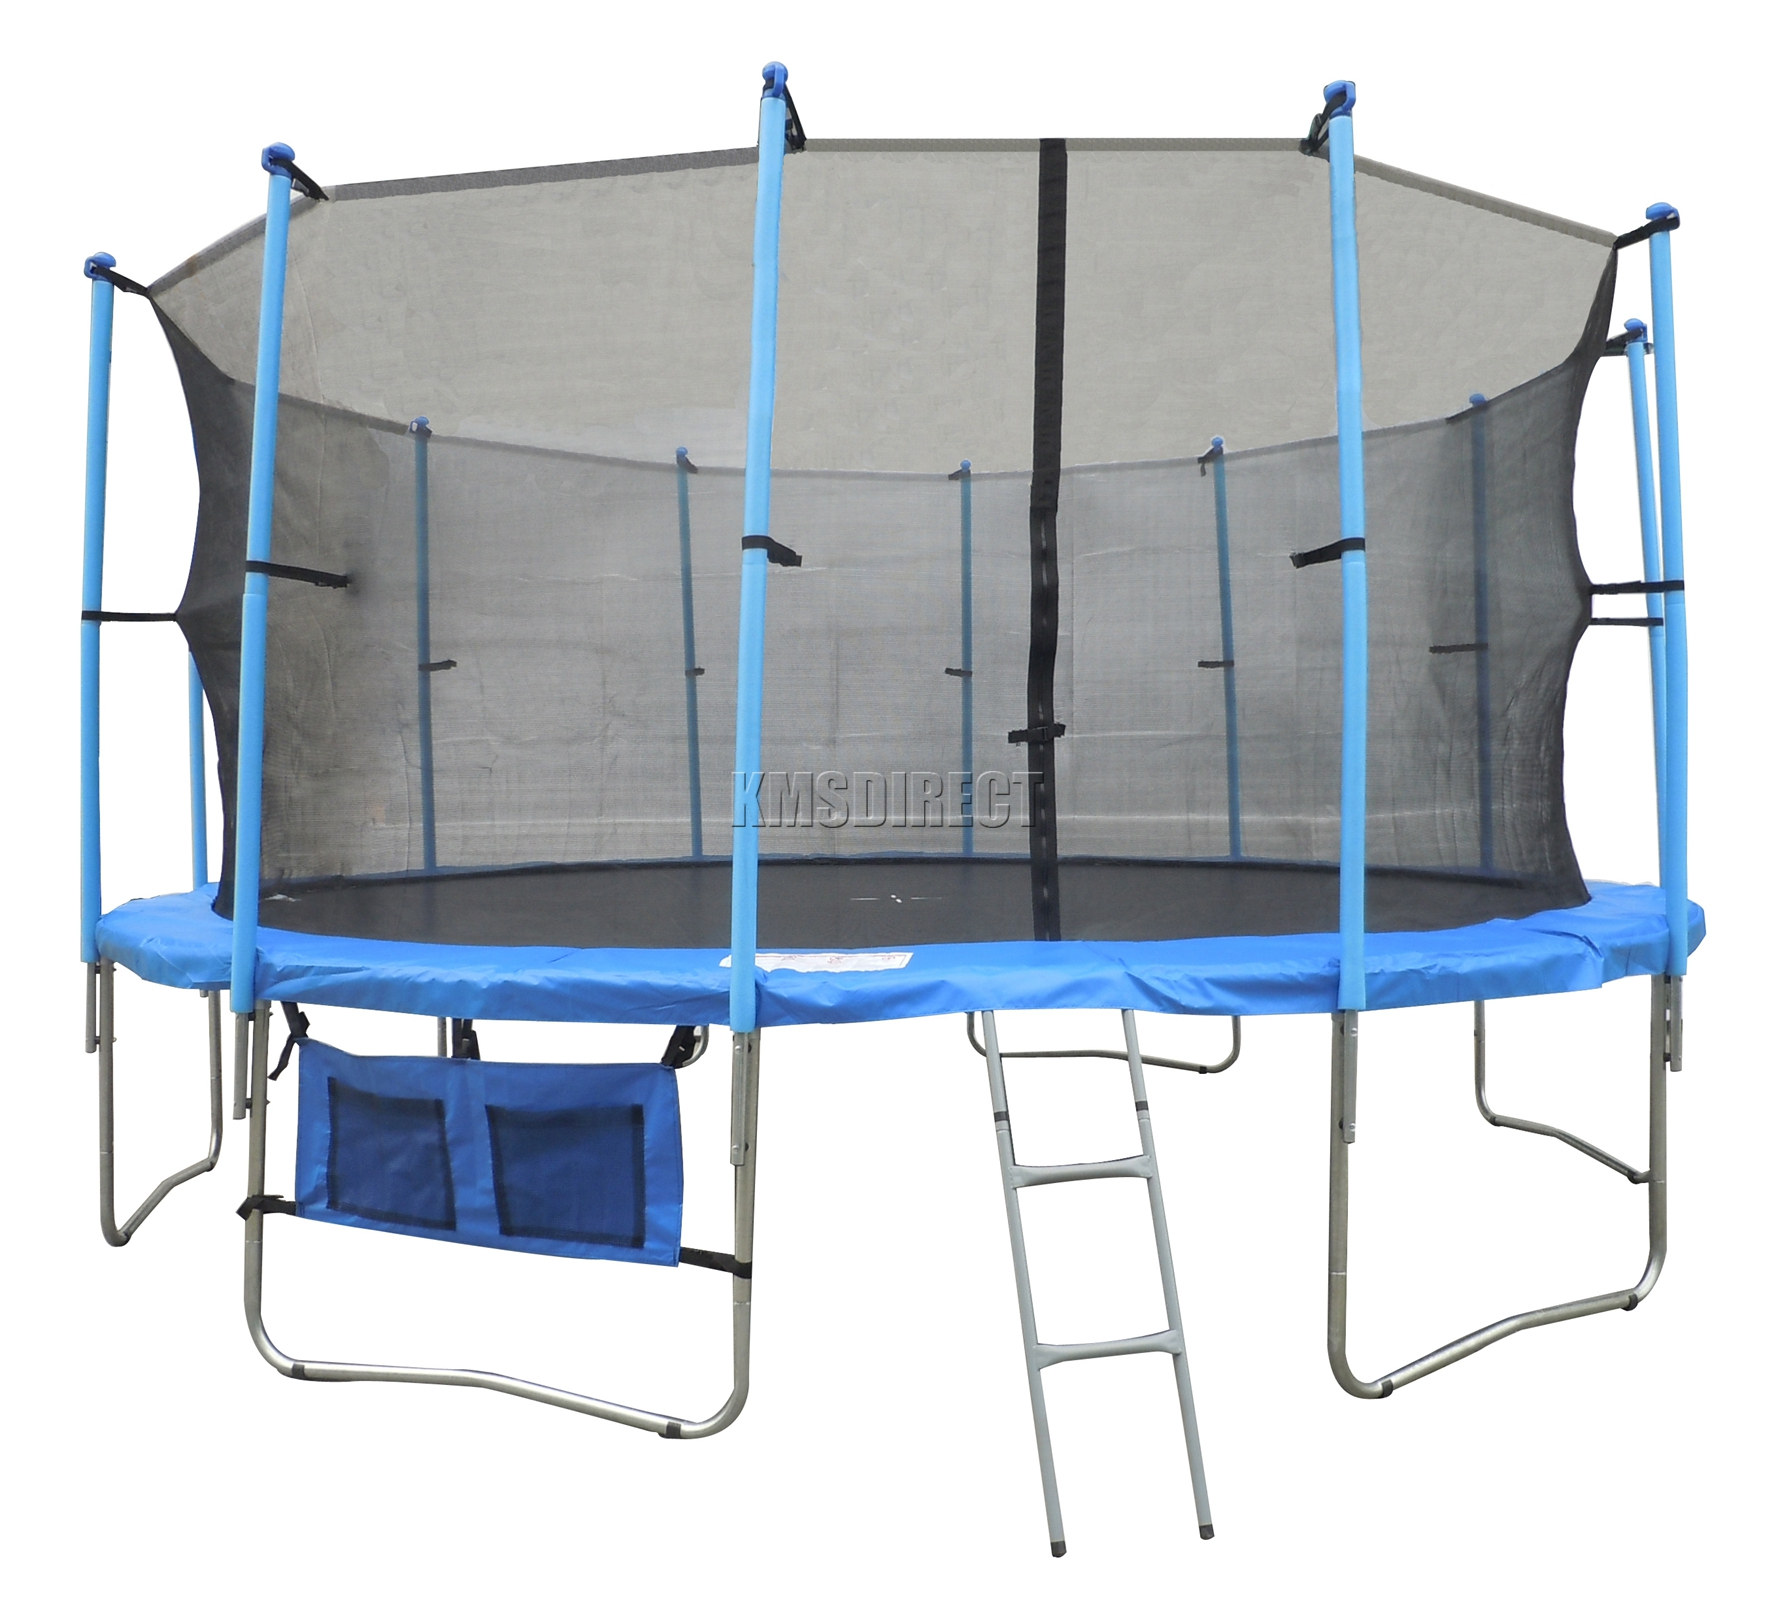 Trampoline With Safety Enclosure Net Ladder Rain Cover 8FT